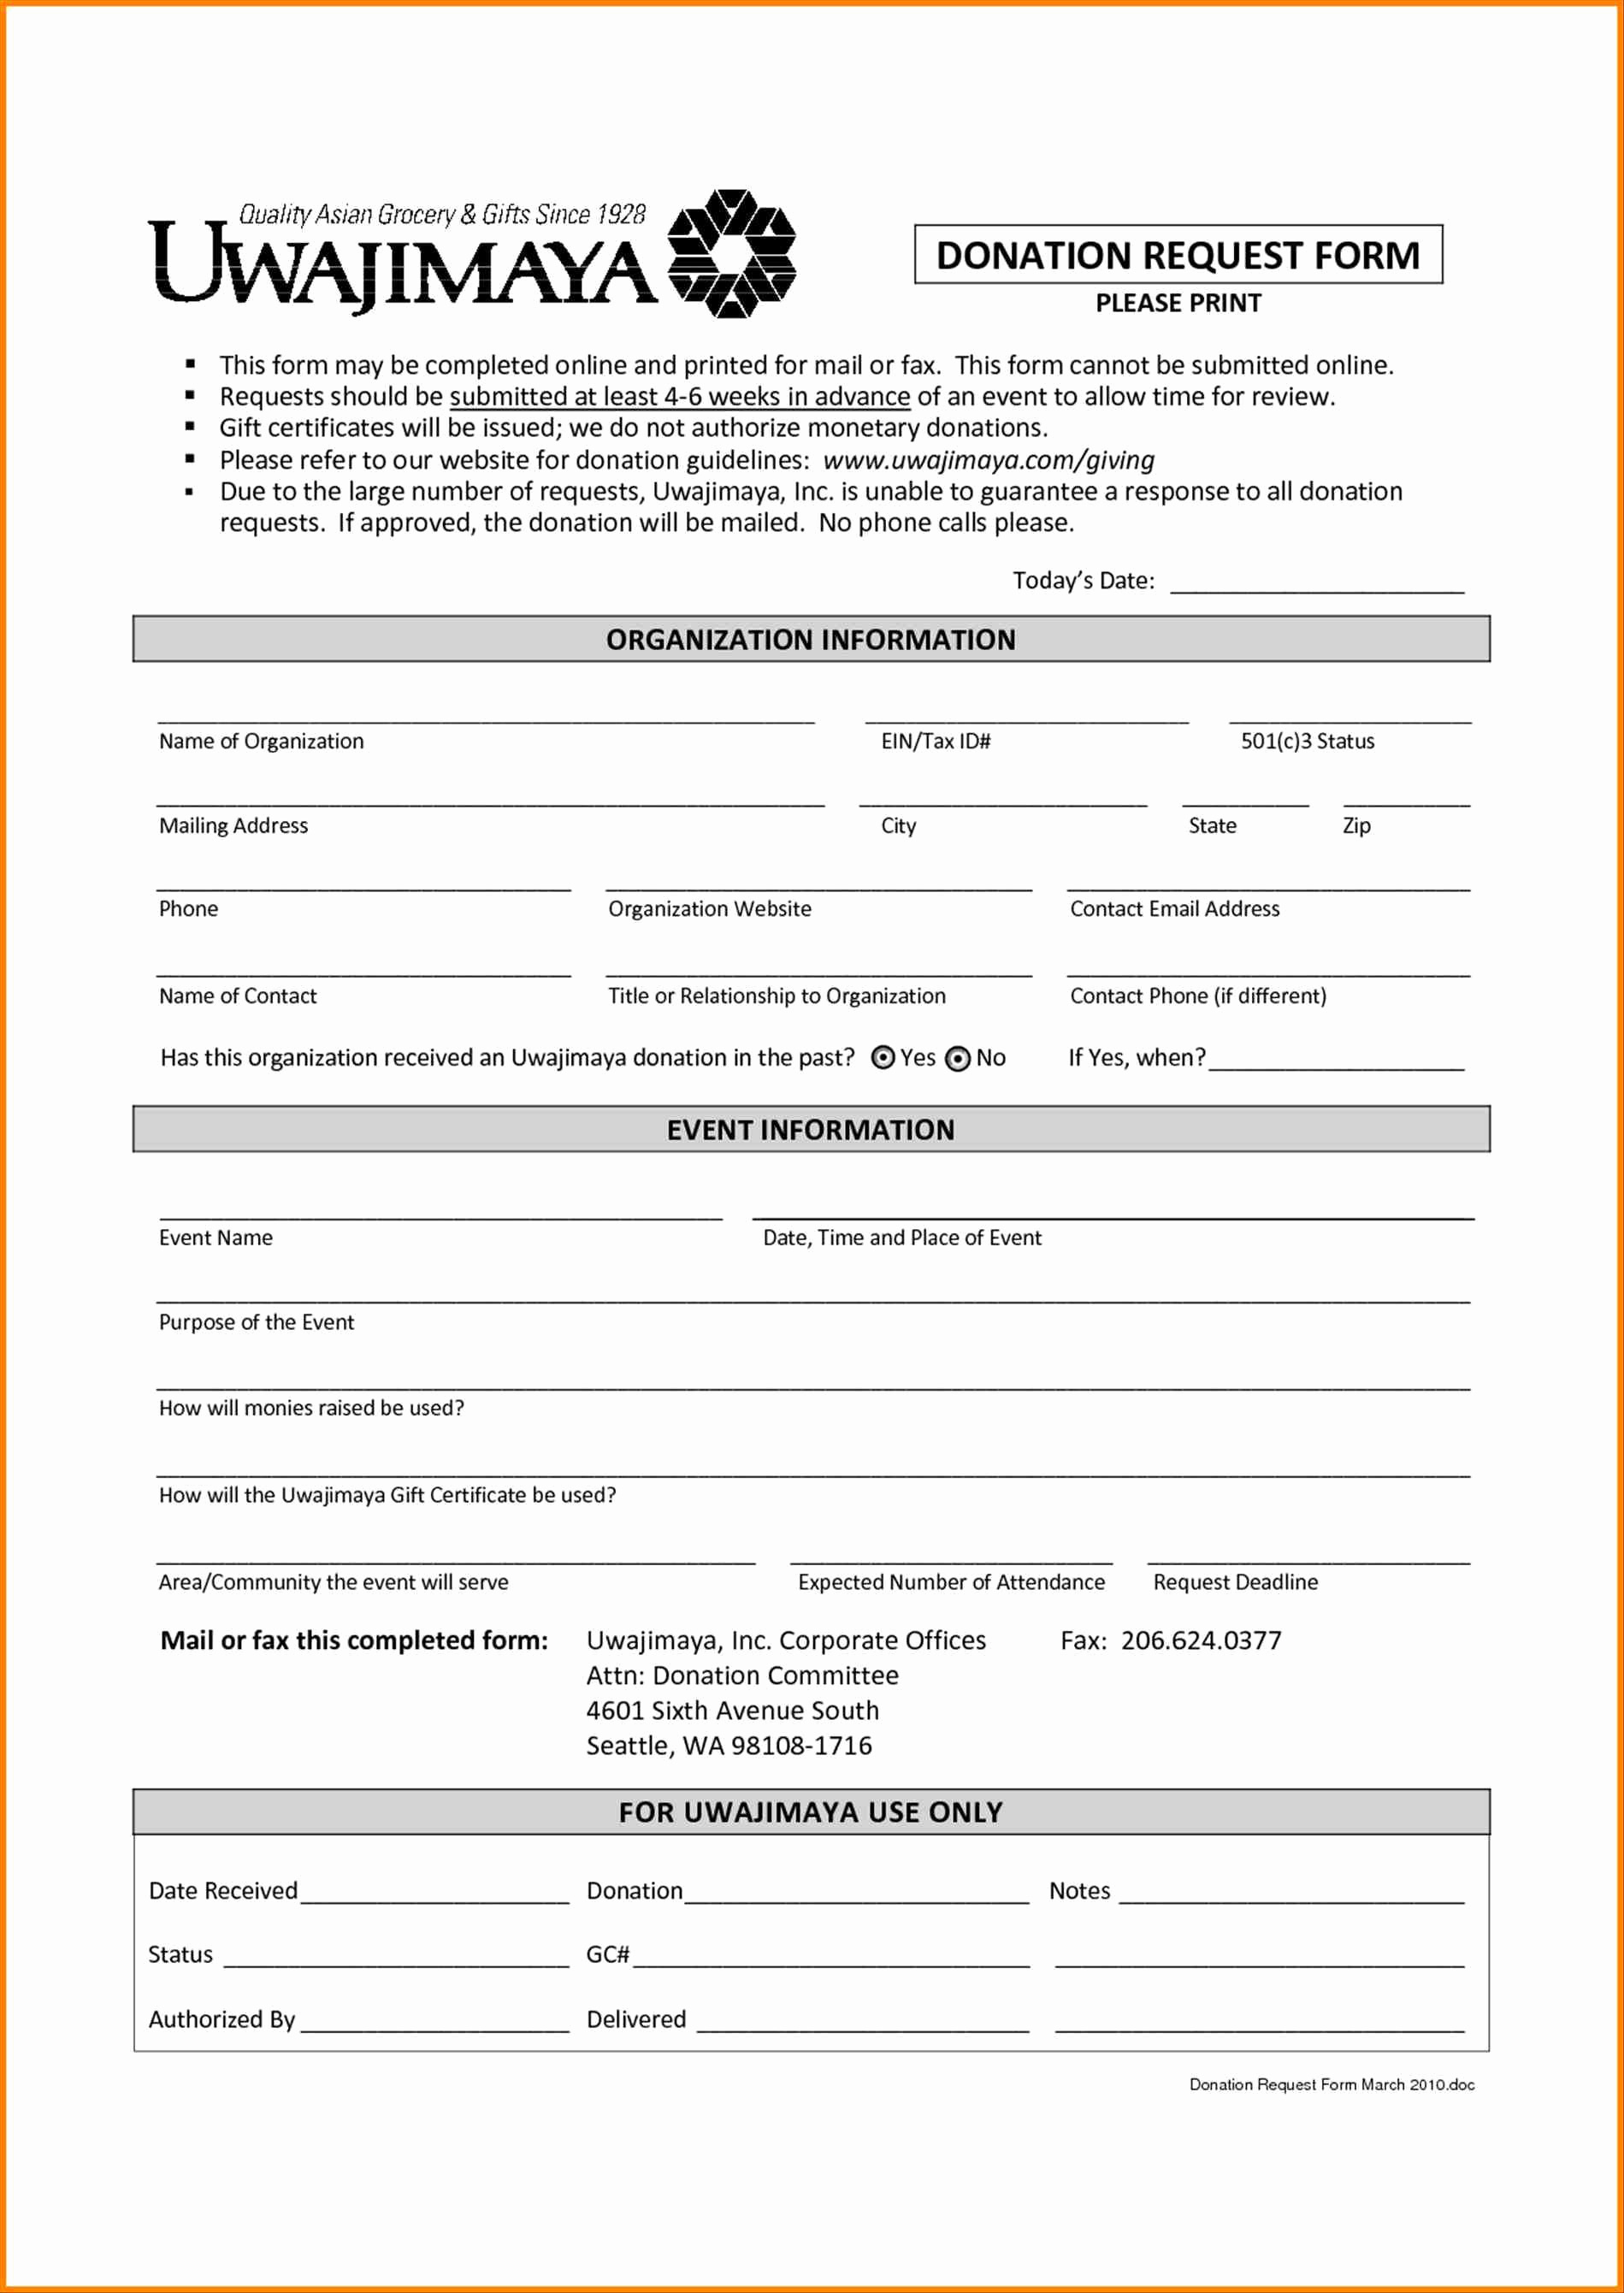 Donation Value Guide 2017 Spreadsheet With Irs Donation Value Guide 2017 Spreadsheet Best Of Goodwill Donation